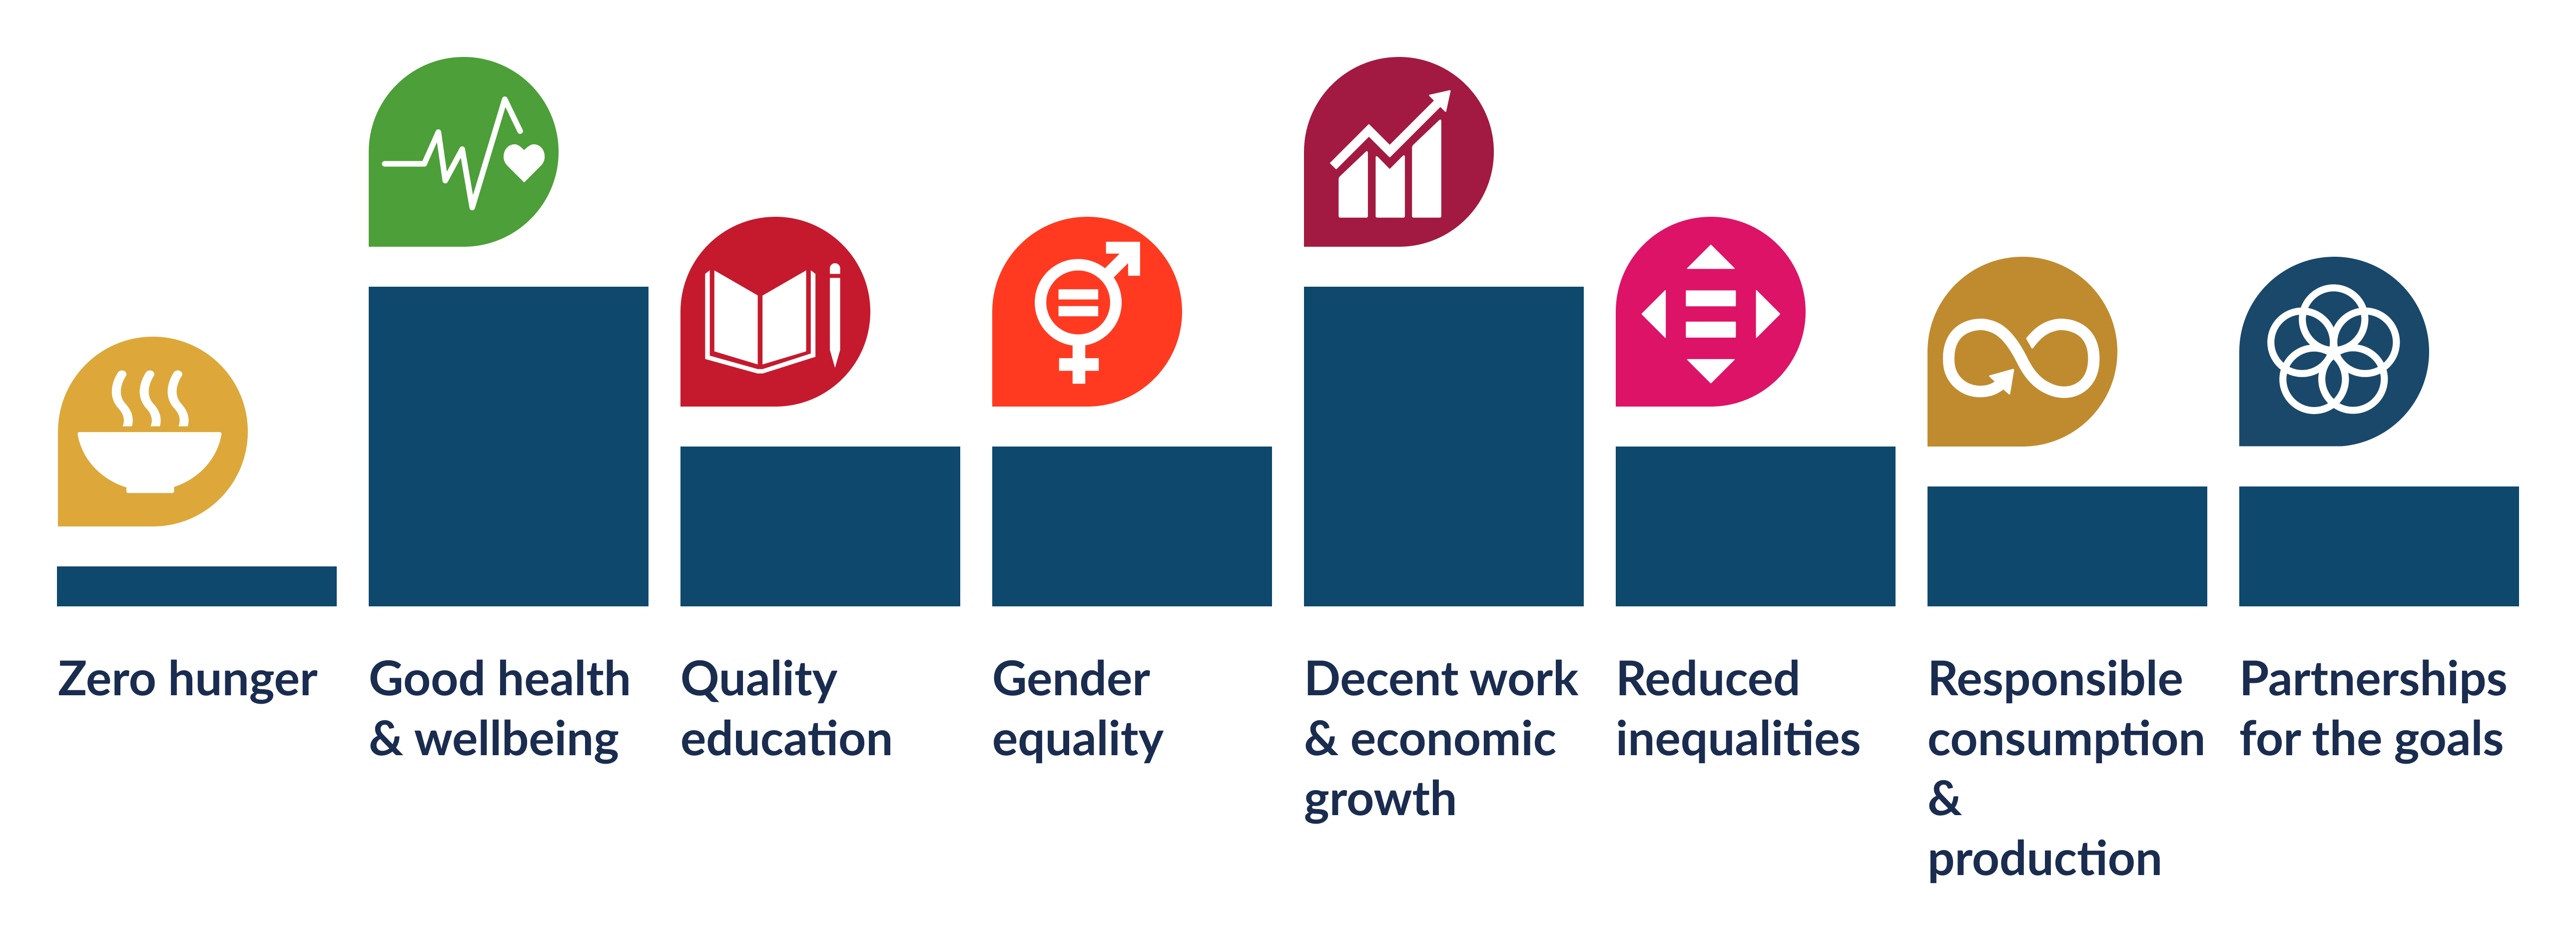 A graphic capturing our impact across the relevant sustainable development goals.